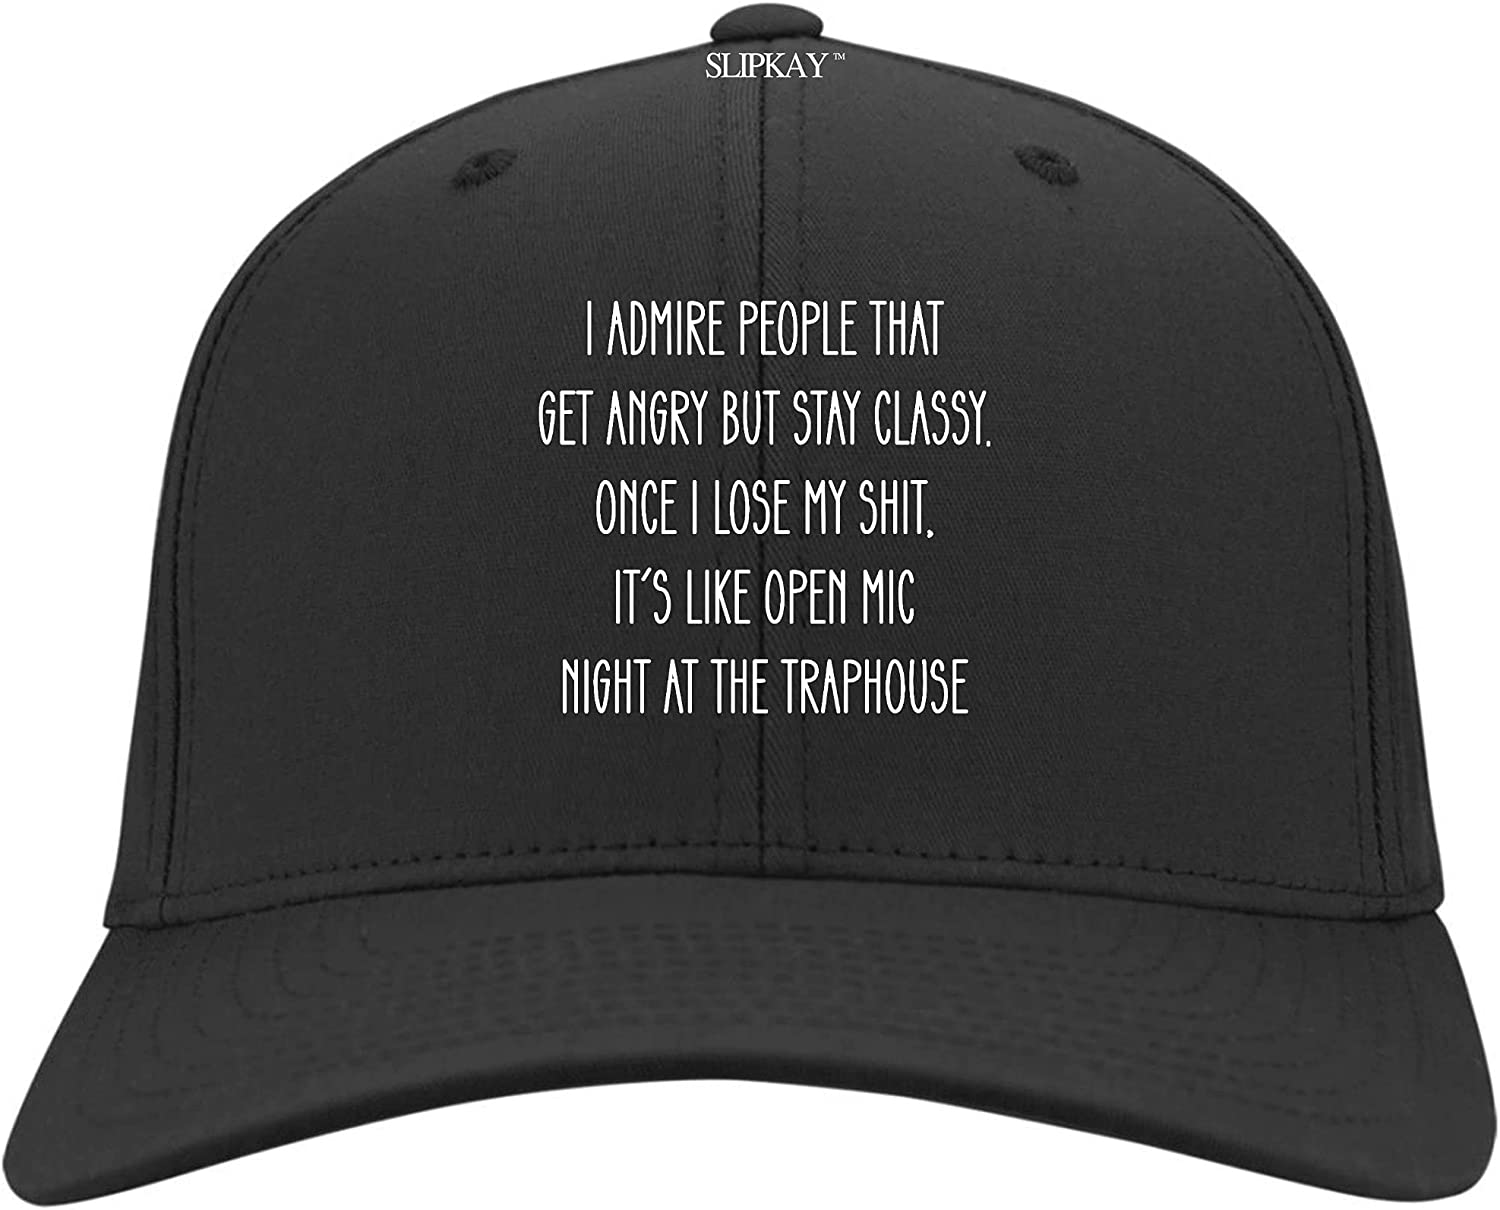 Morgan Schai I Admire People That Get Angry But Stay Classy Hat,Twill Cap